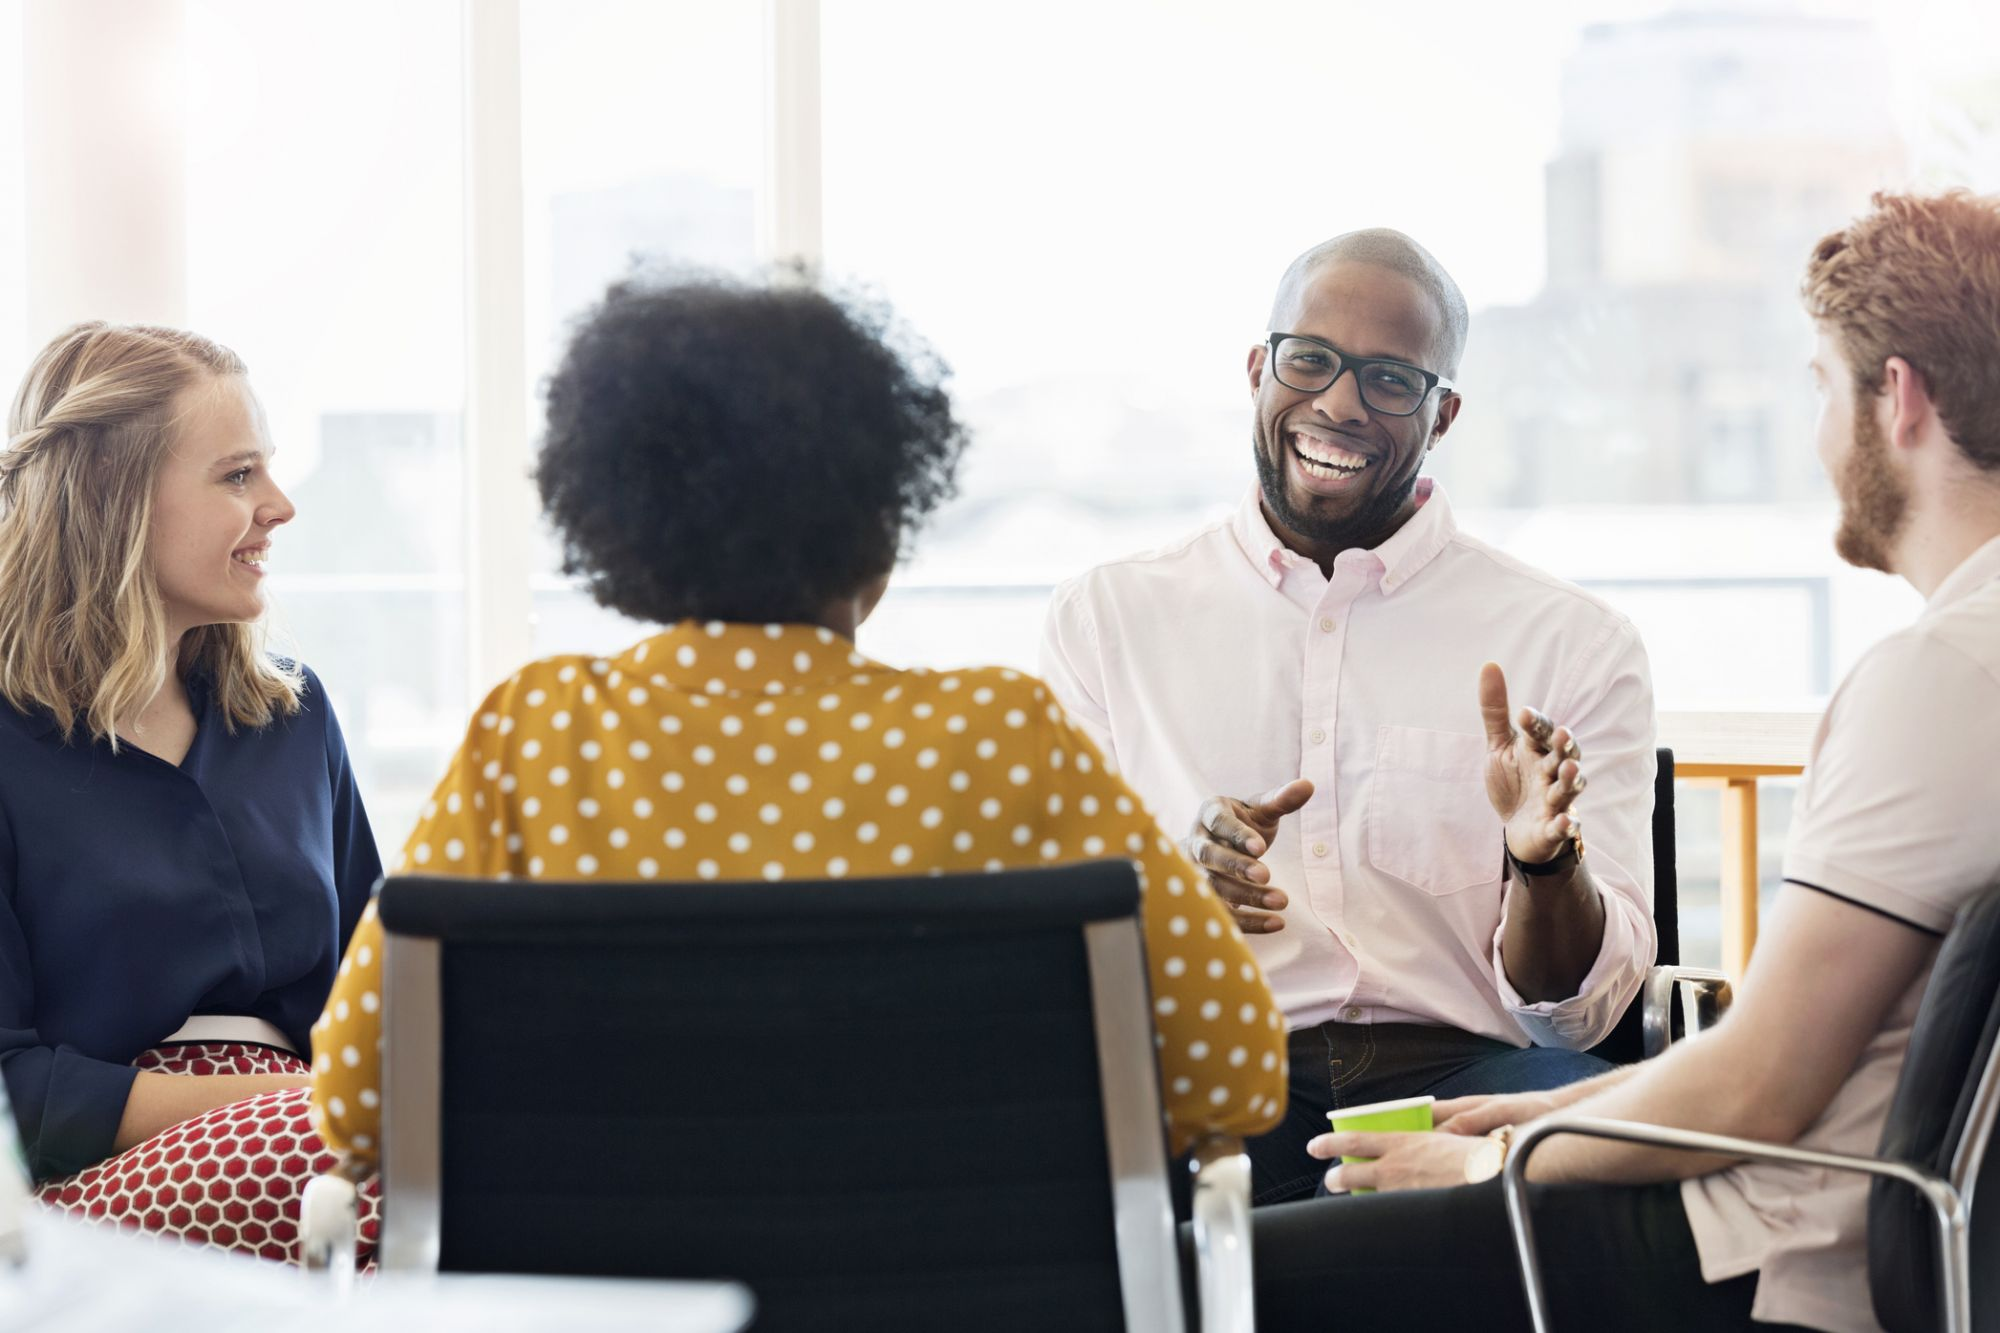 Set Realistic, Attainable Goals for Your Employees